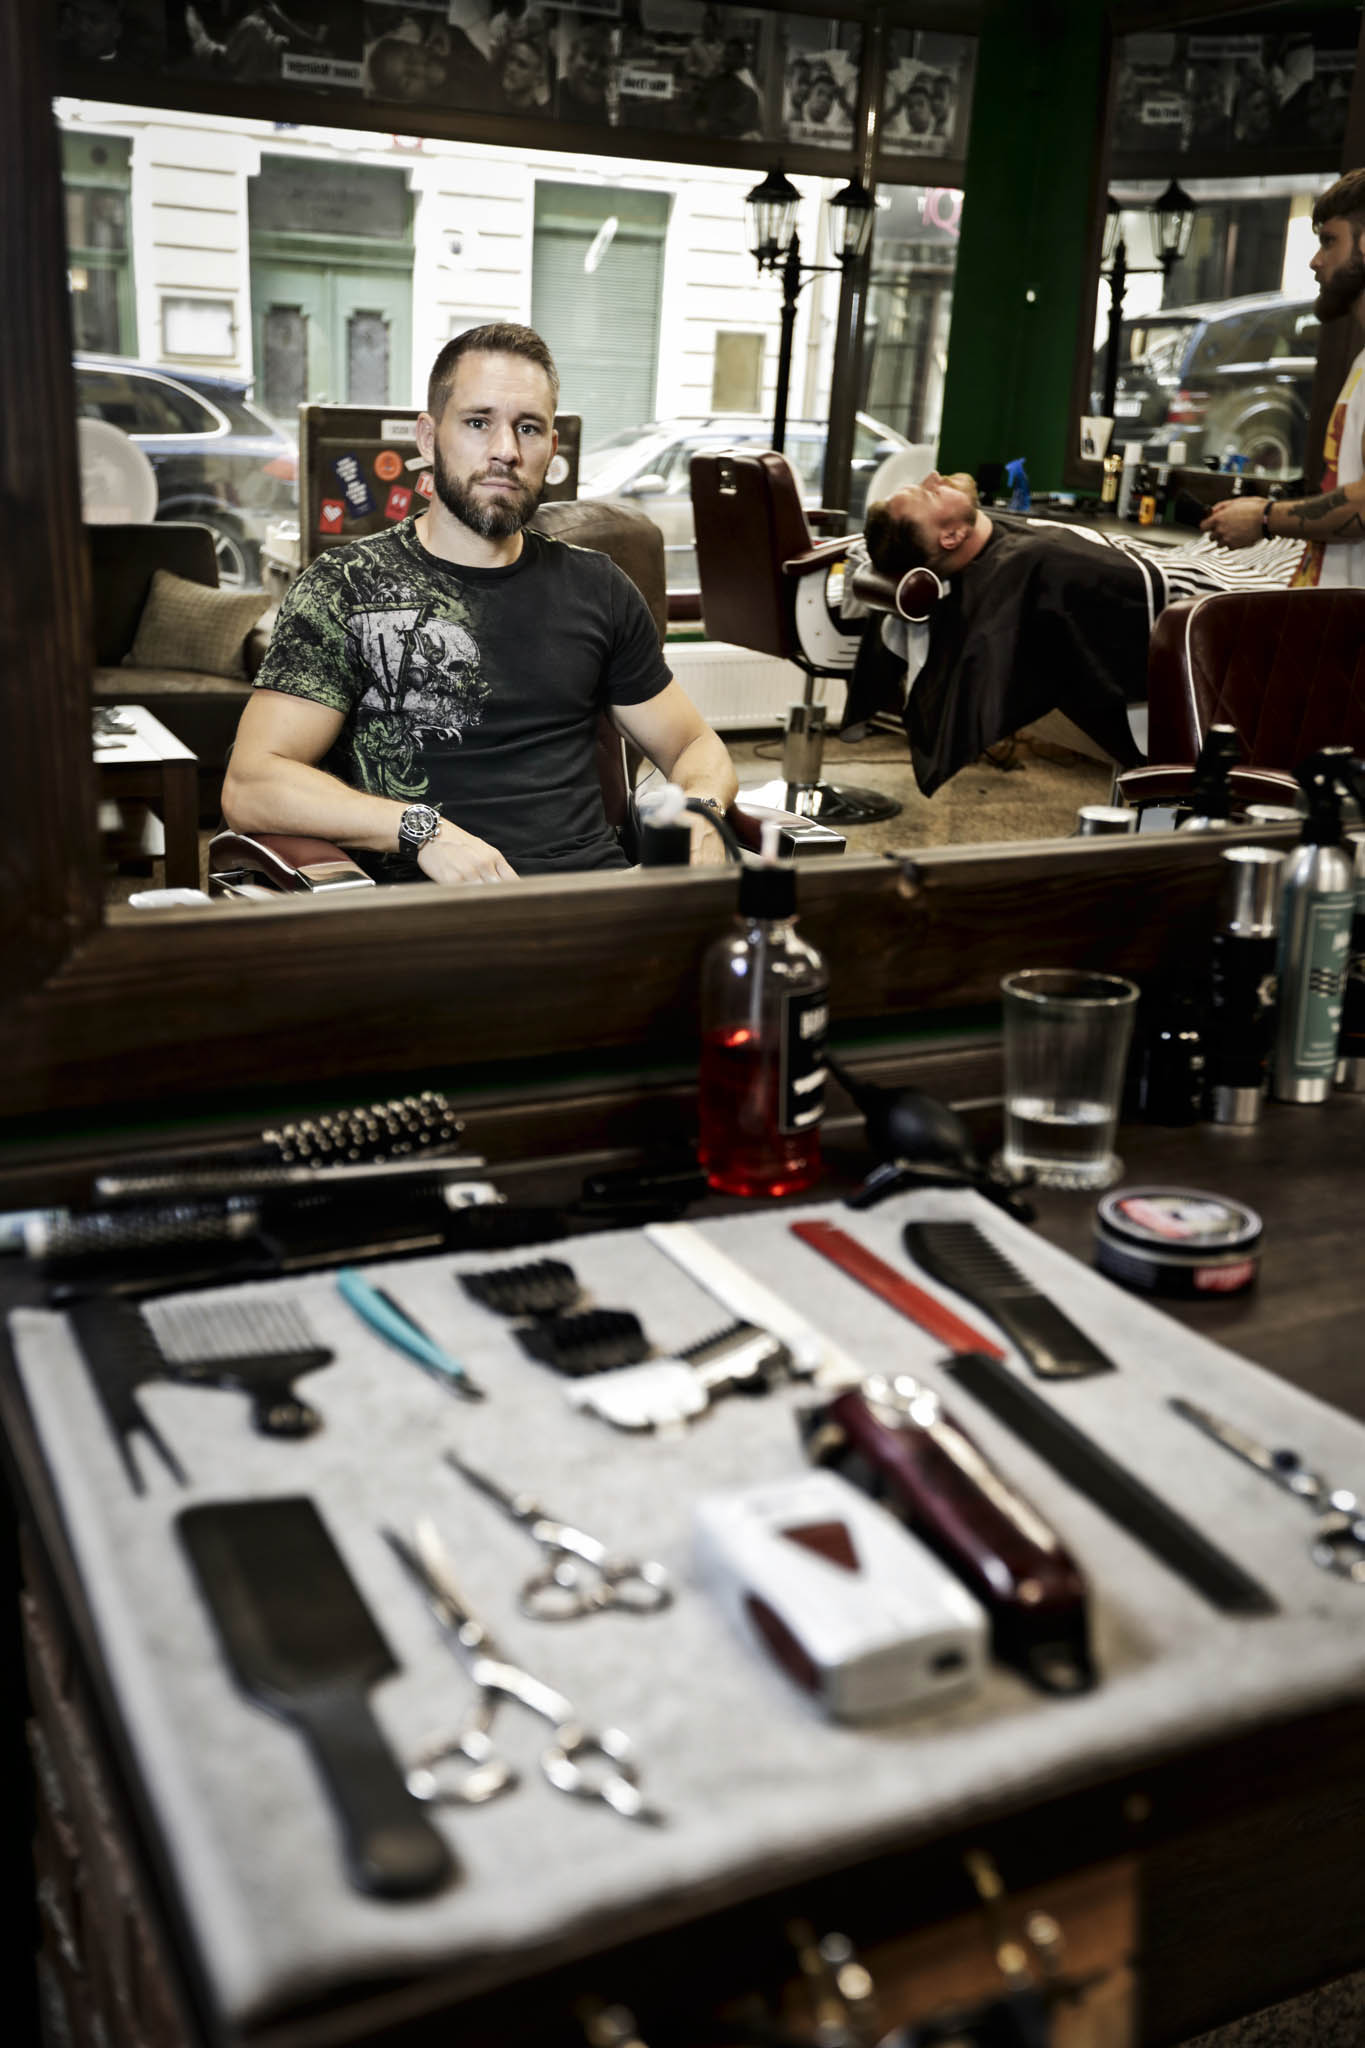 Miroslav Hradil, zakladatel barber shopu The Original Barber